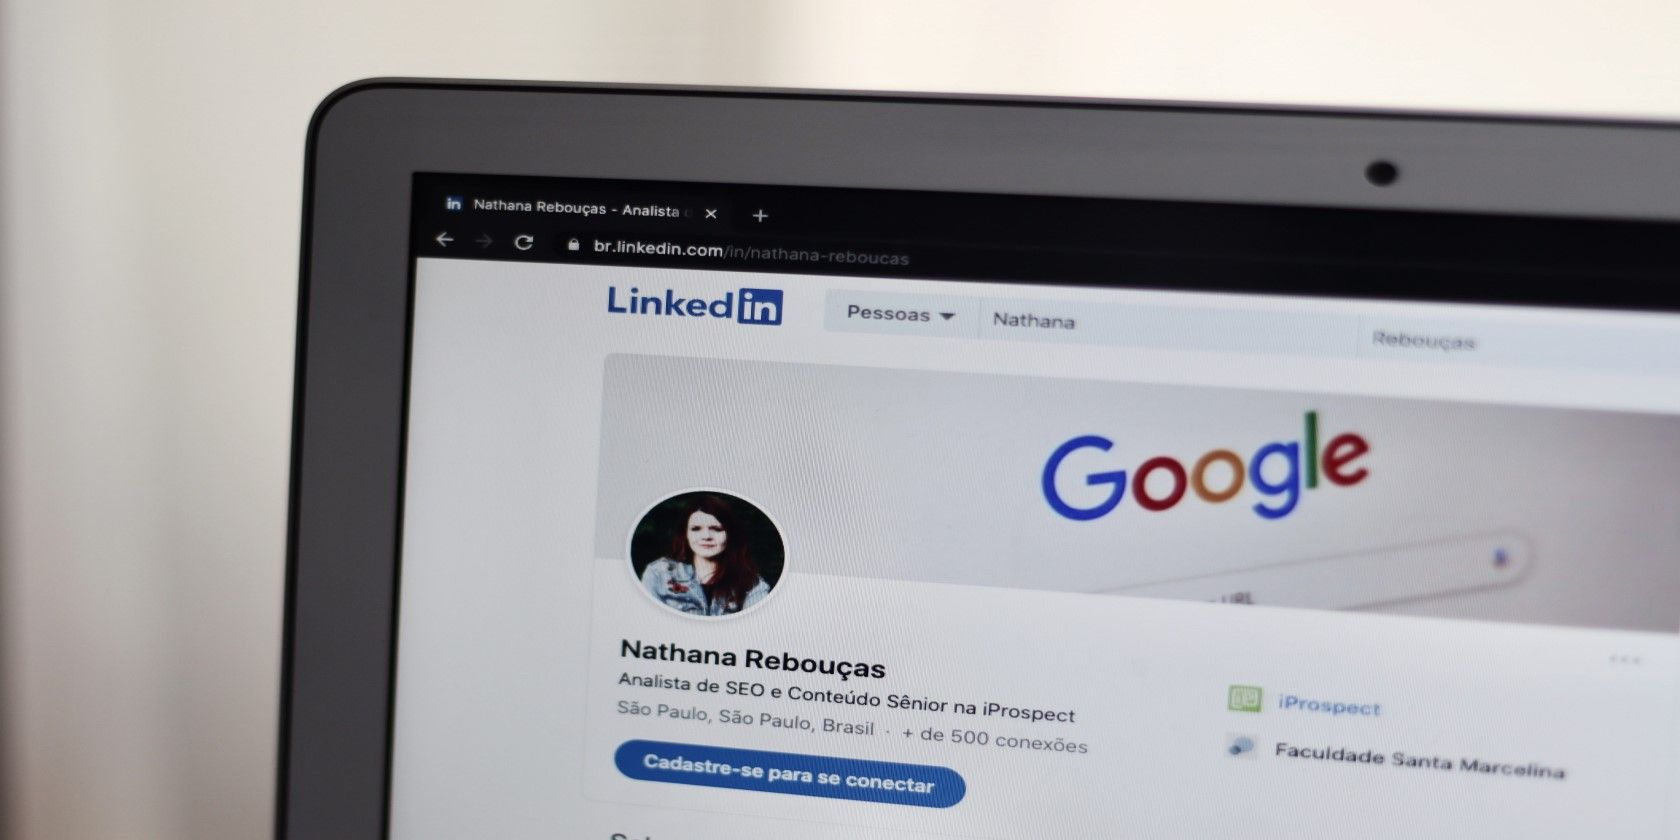 7 Free LinkedIn Features to Use in Your Job Search - MUO - MakeUseOf